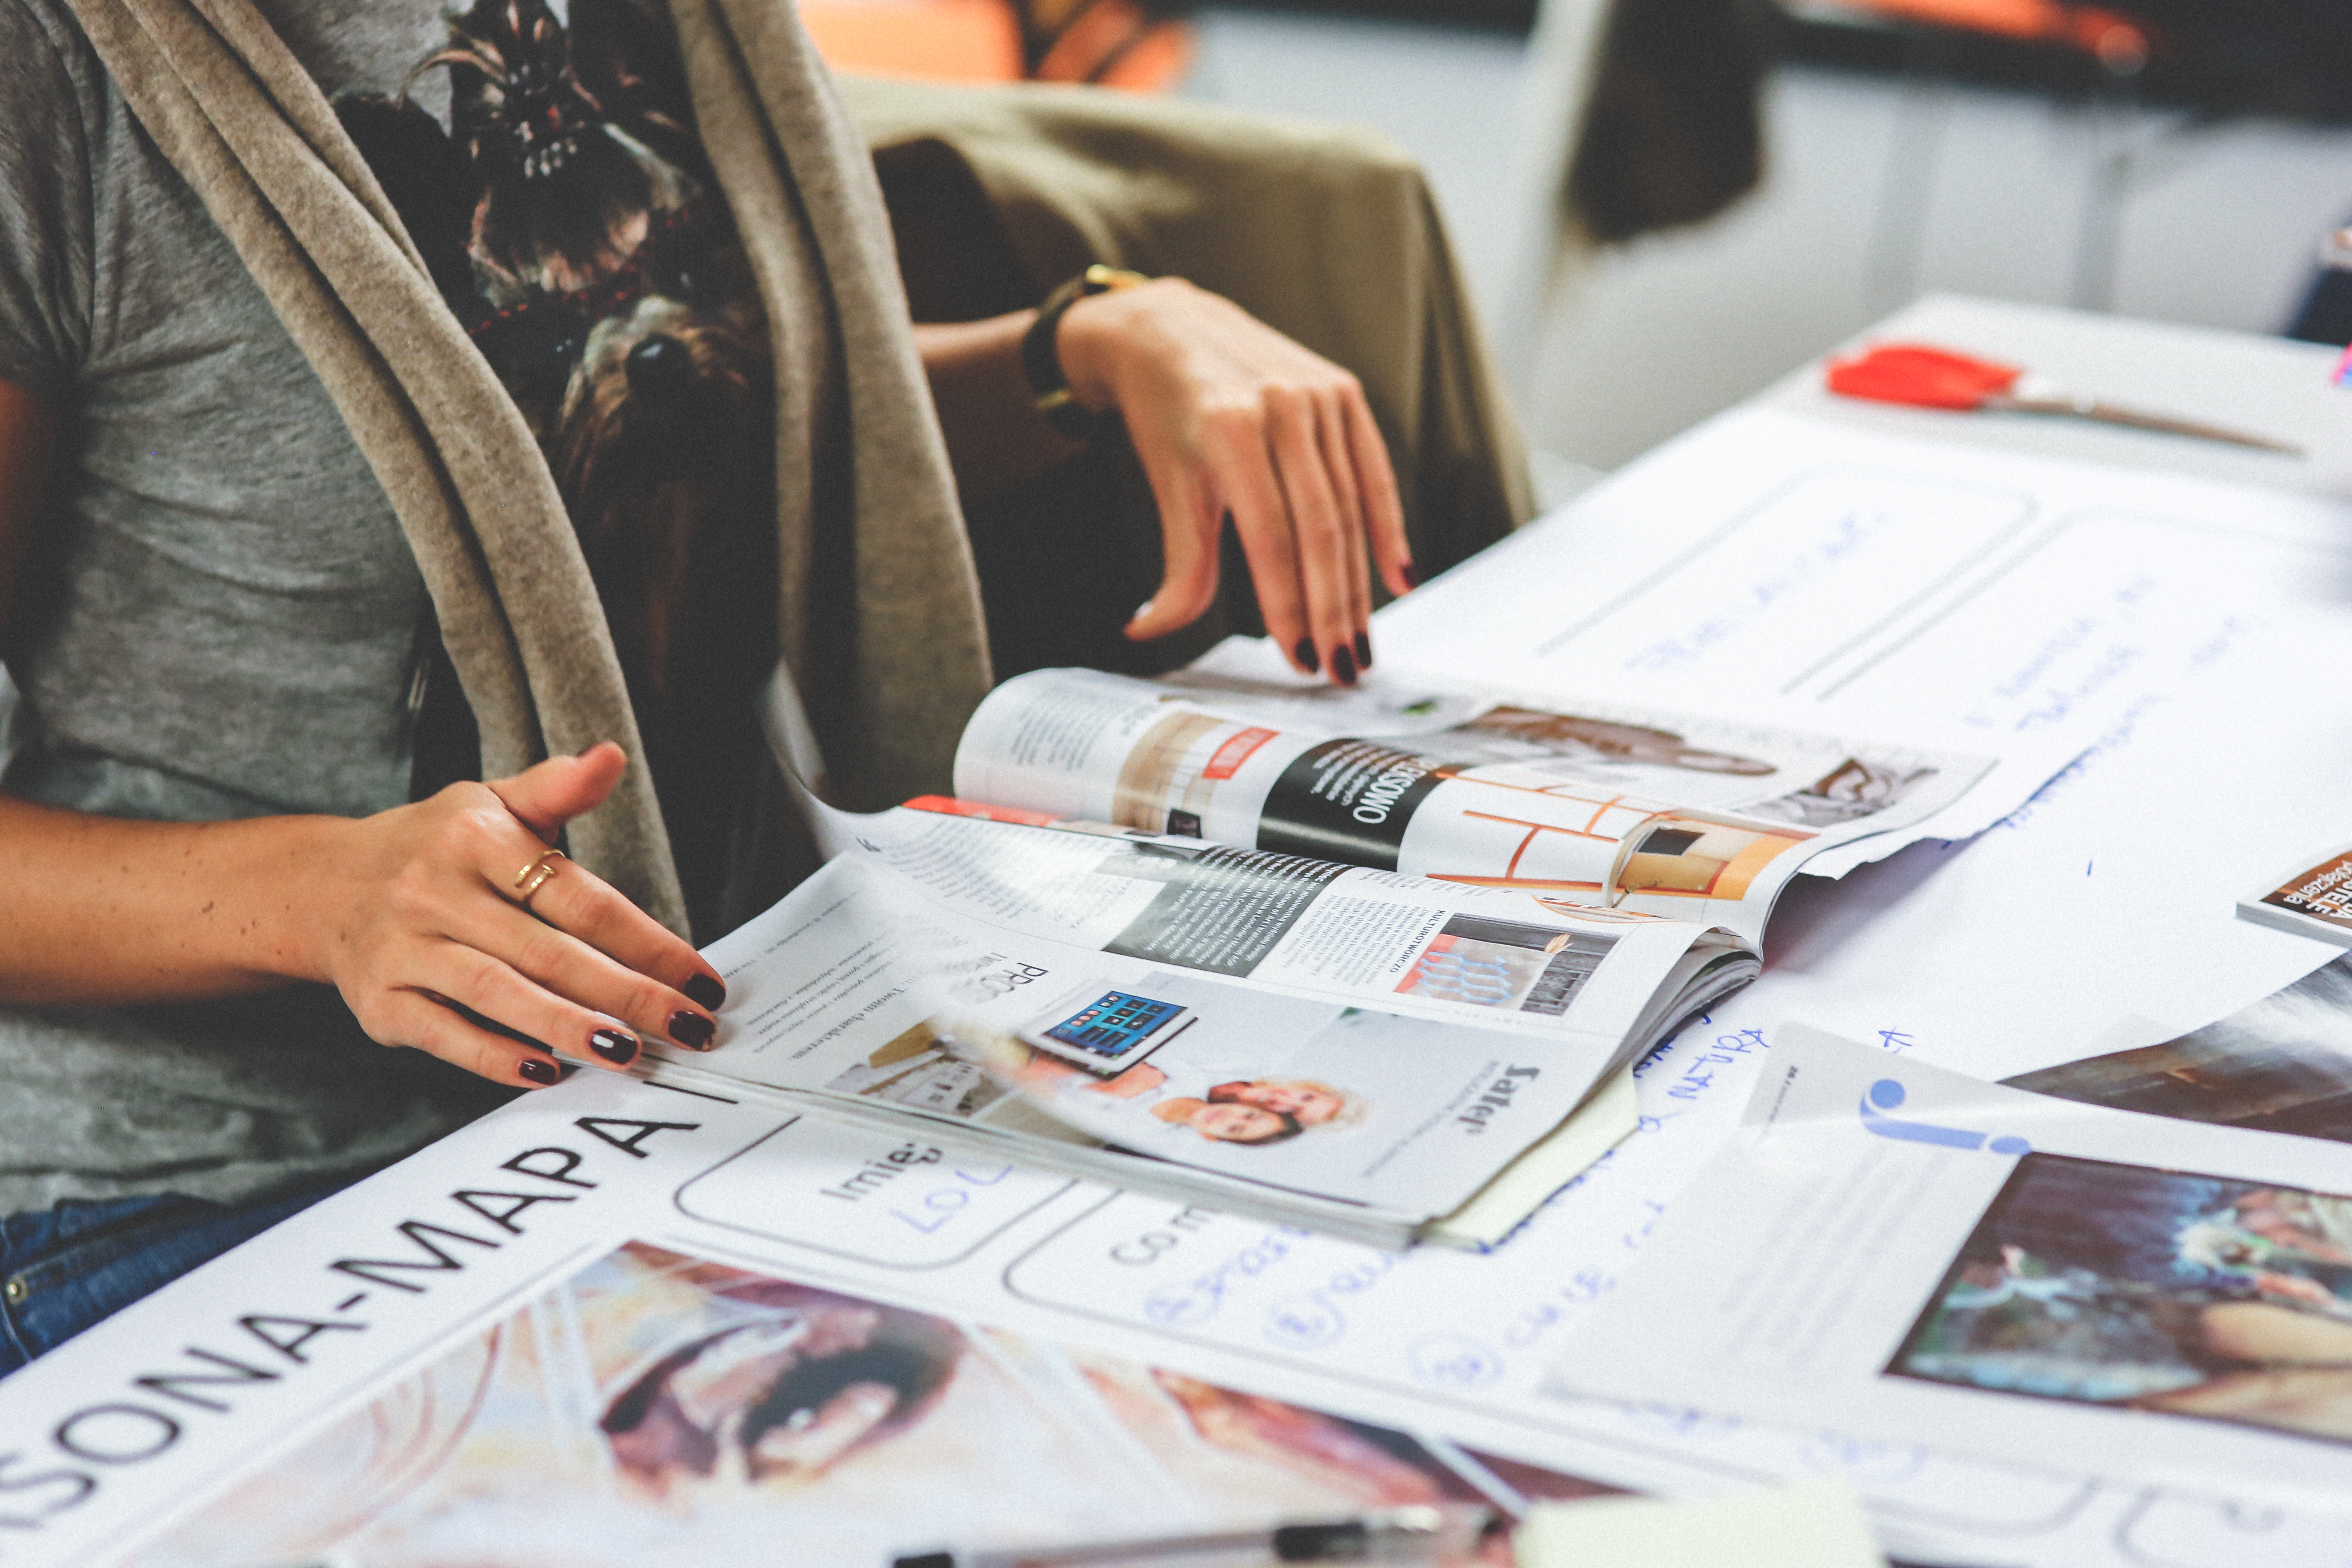 hands-people-woman-girl Top 25 Magazines That Pay $50 To Freelance Writers